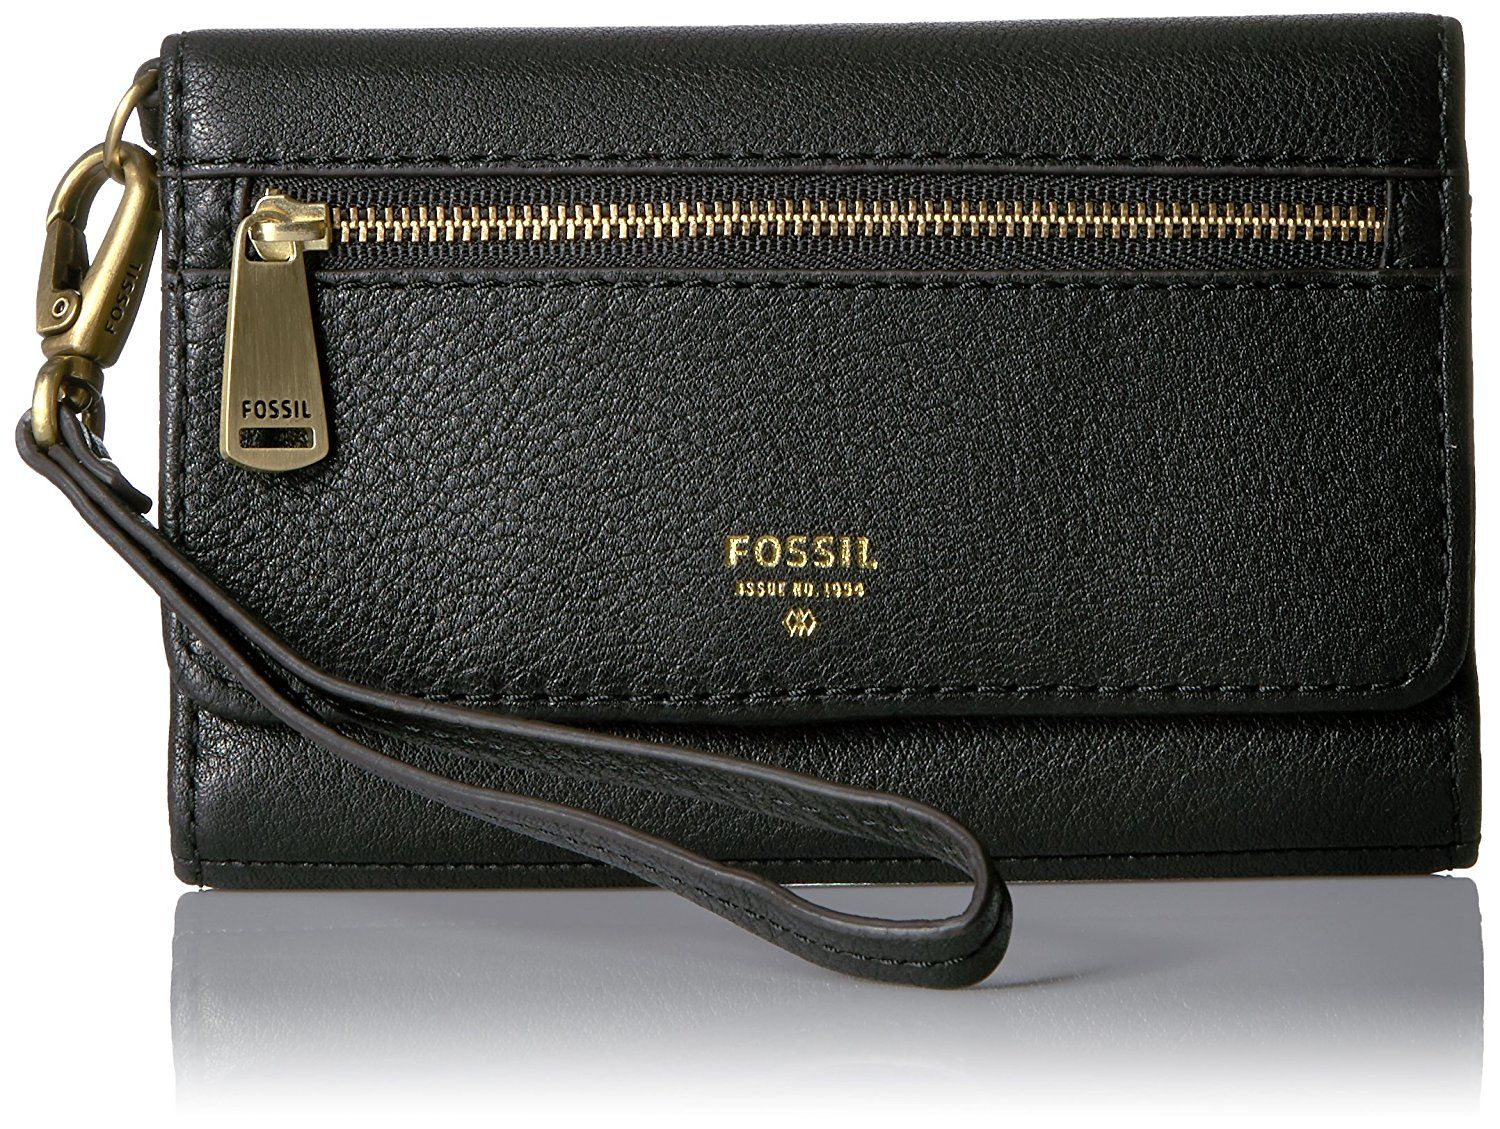 71ec4ac35239 Fossil Women's Brown Leather Emory Wallet in 2019 | Bags & Wallets | Brown leather  wallet, Zip wallet, Leather wallet